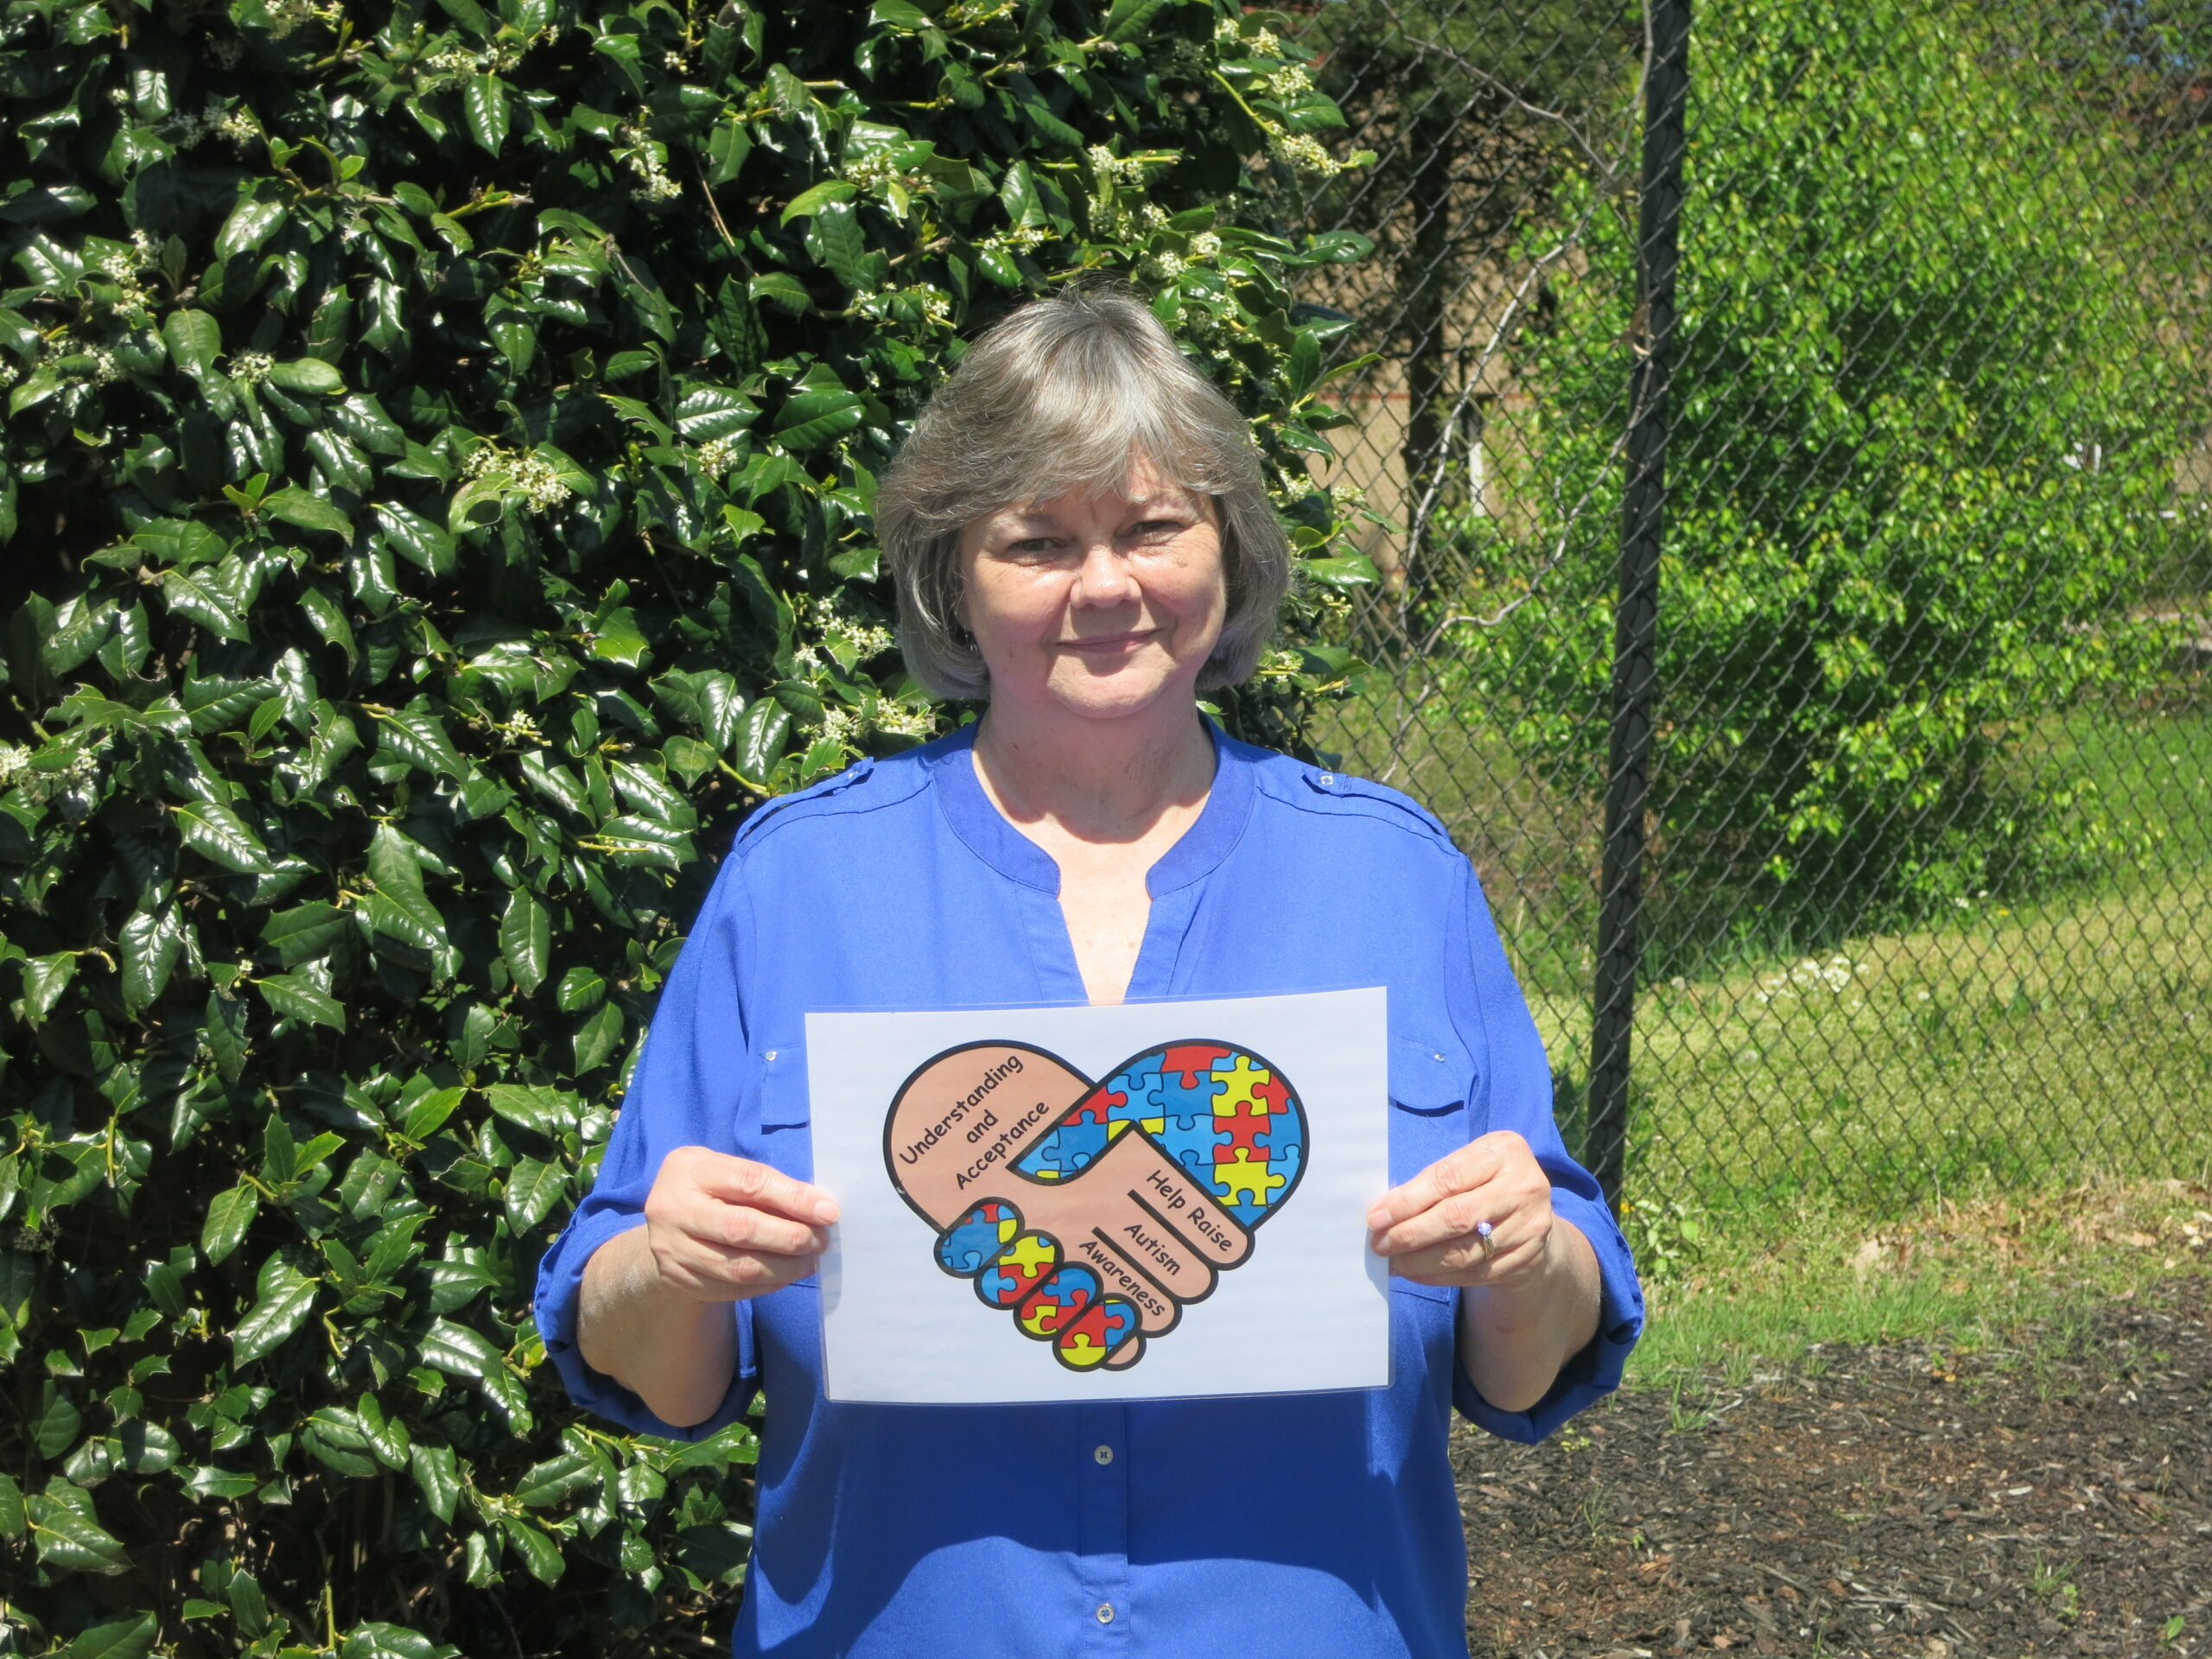 Tec-Masters' employee Mala Thompson holding a sign of encouragement for our Autism walk.